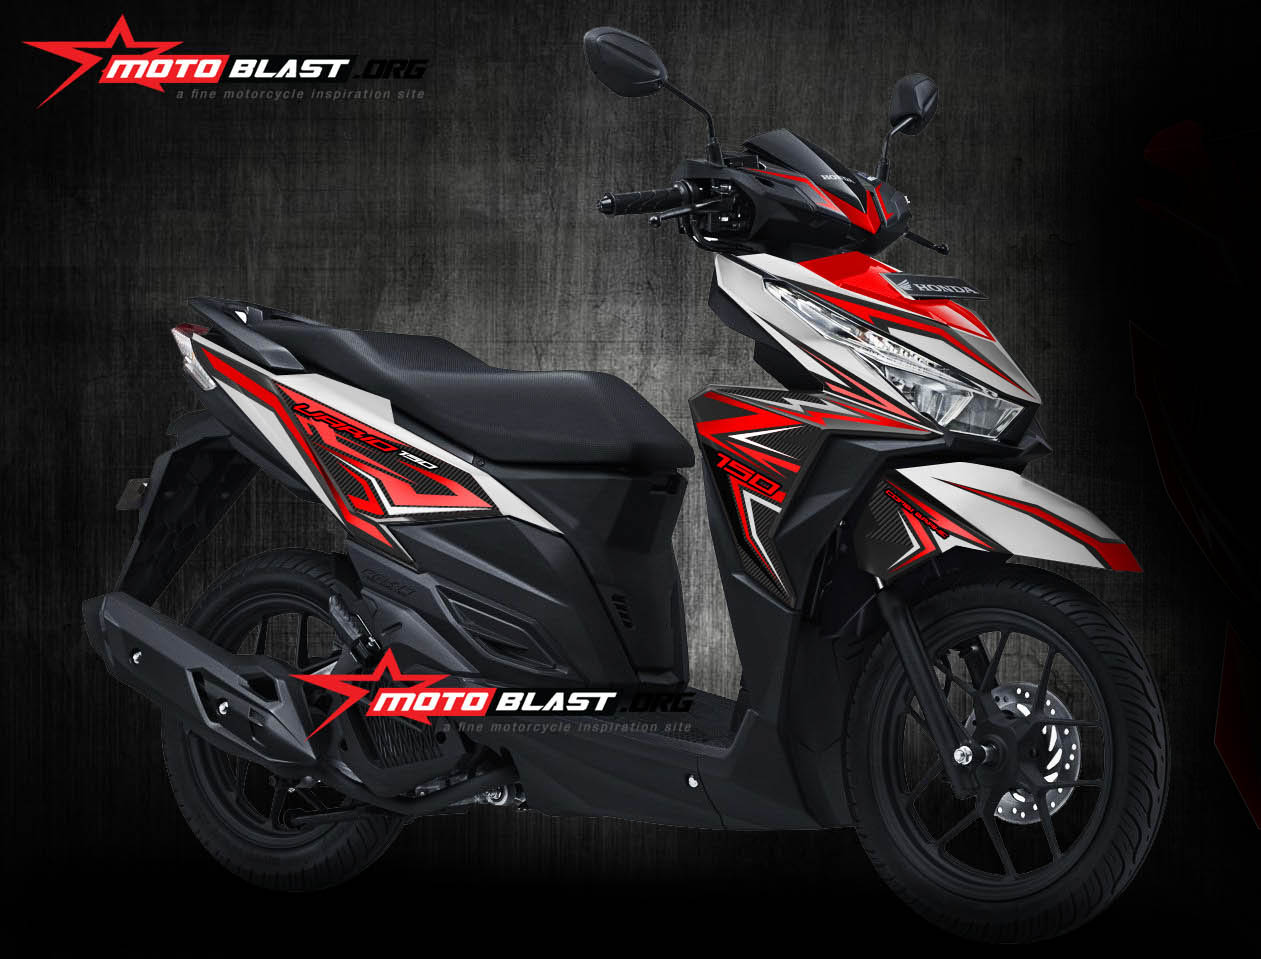 Modifikasi Motor Matic Terbaru Striping Honda Vario 150 125 Esp